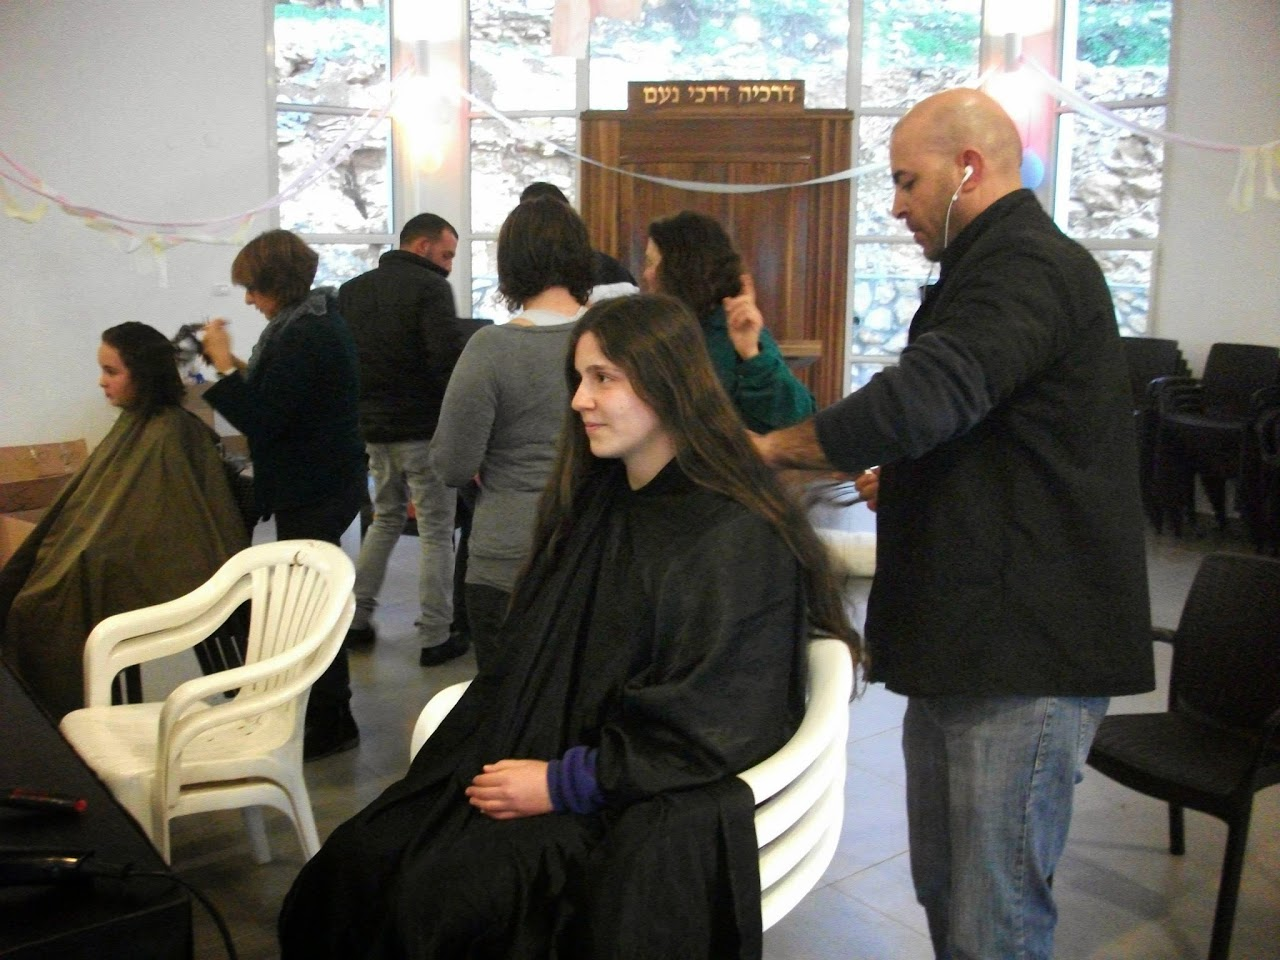 Donating hair for cancer patients 2014  - 1890484_539677142815250_1522658210_o.jpg